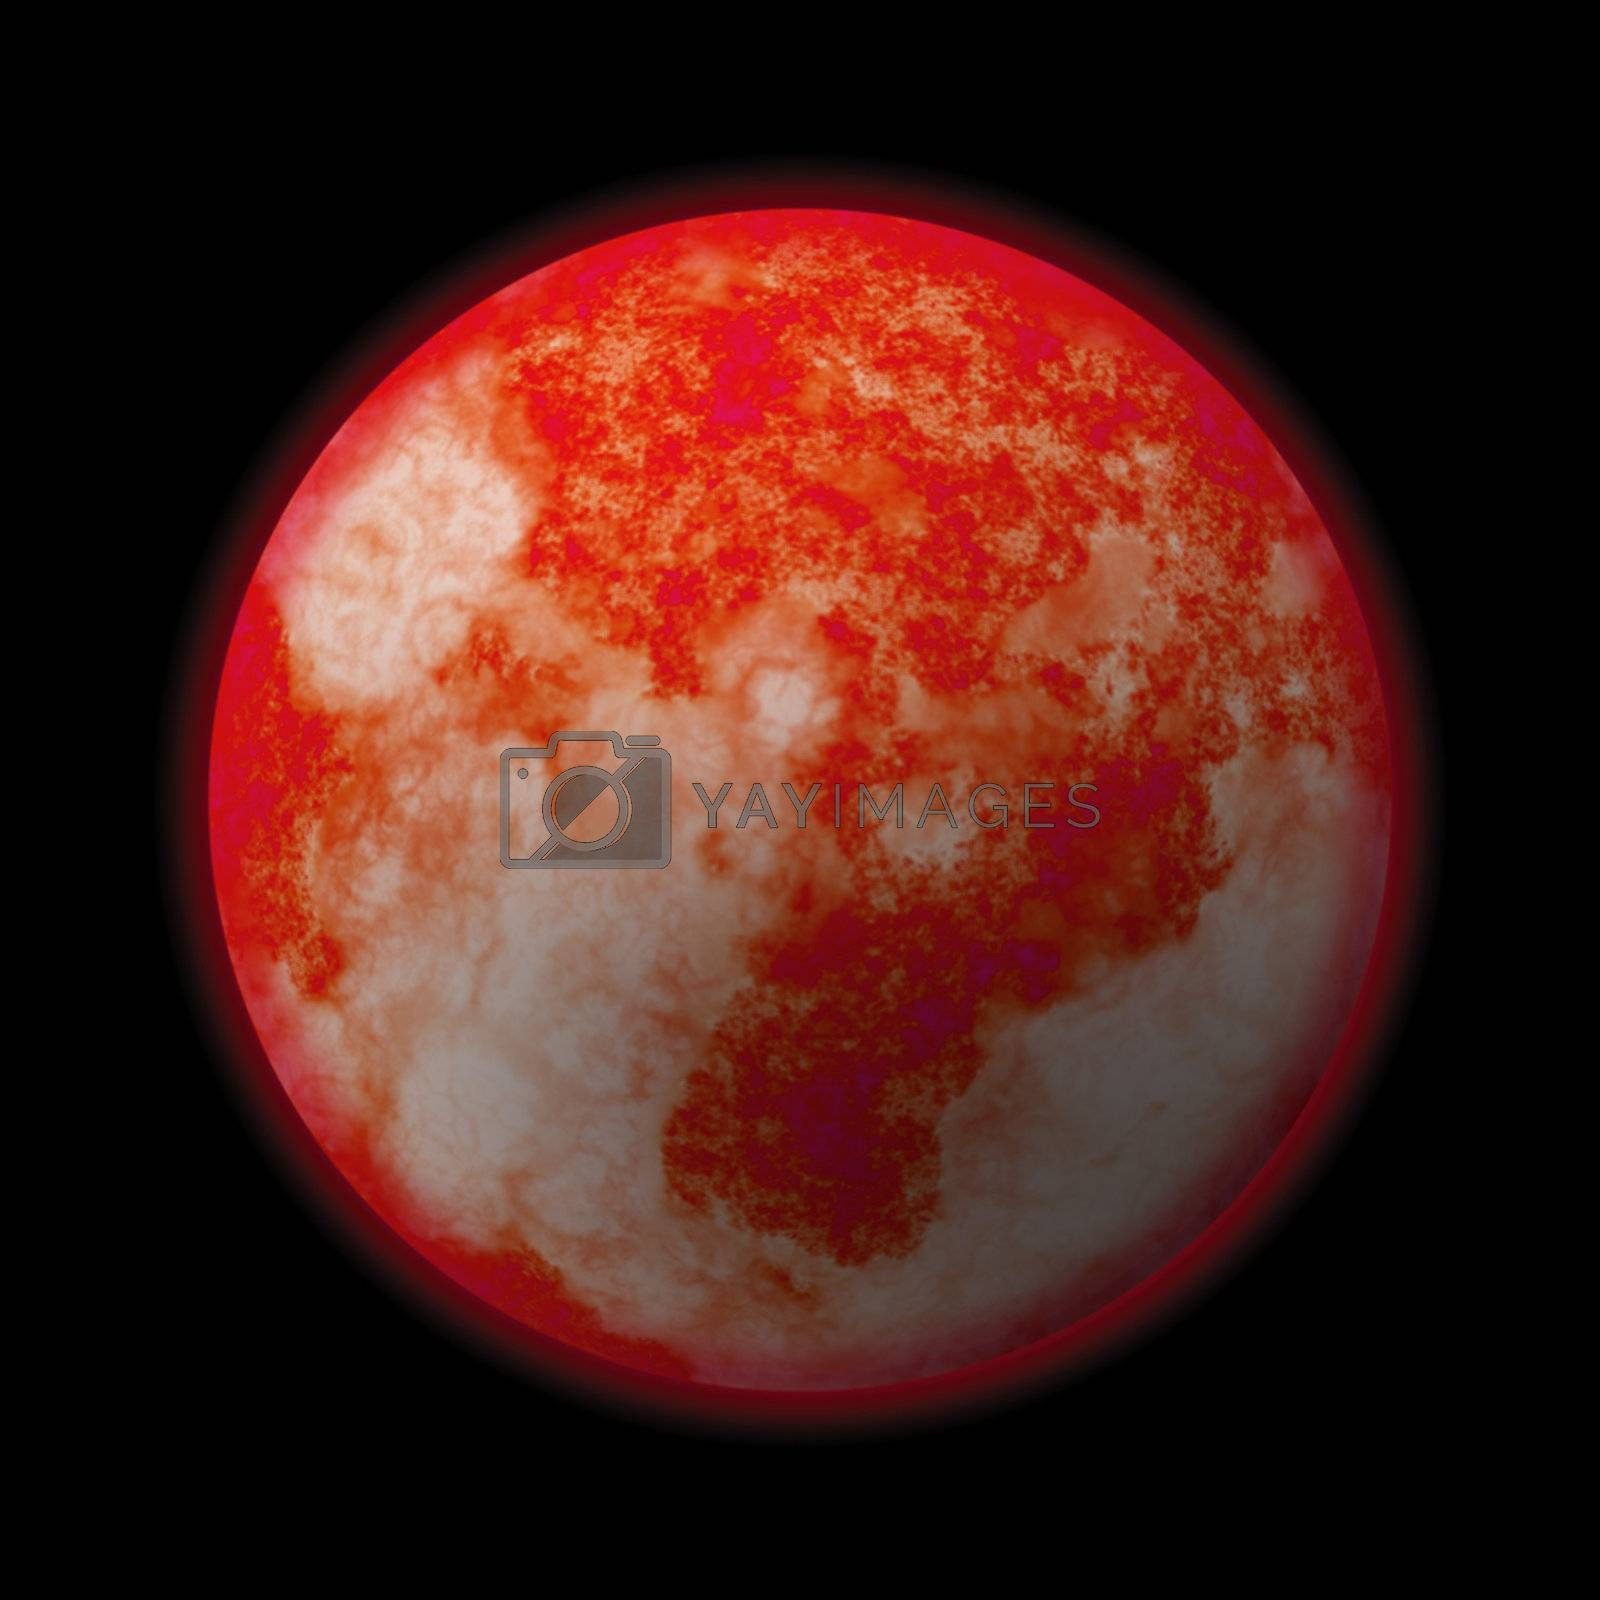 A red hot glowing planet - it works well as Mars or the Sun.